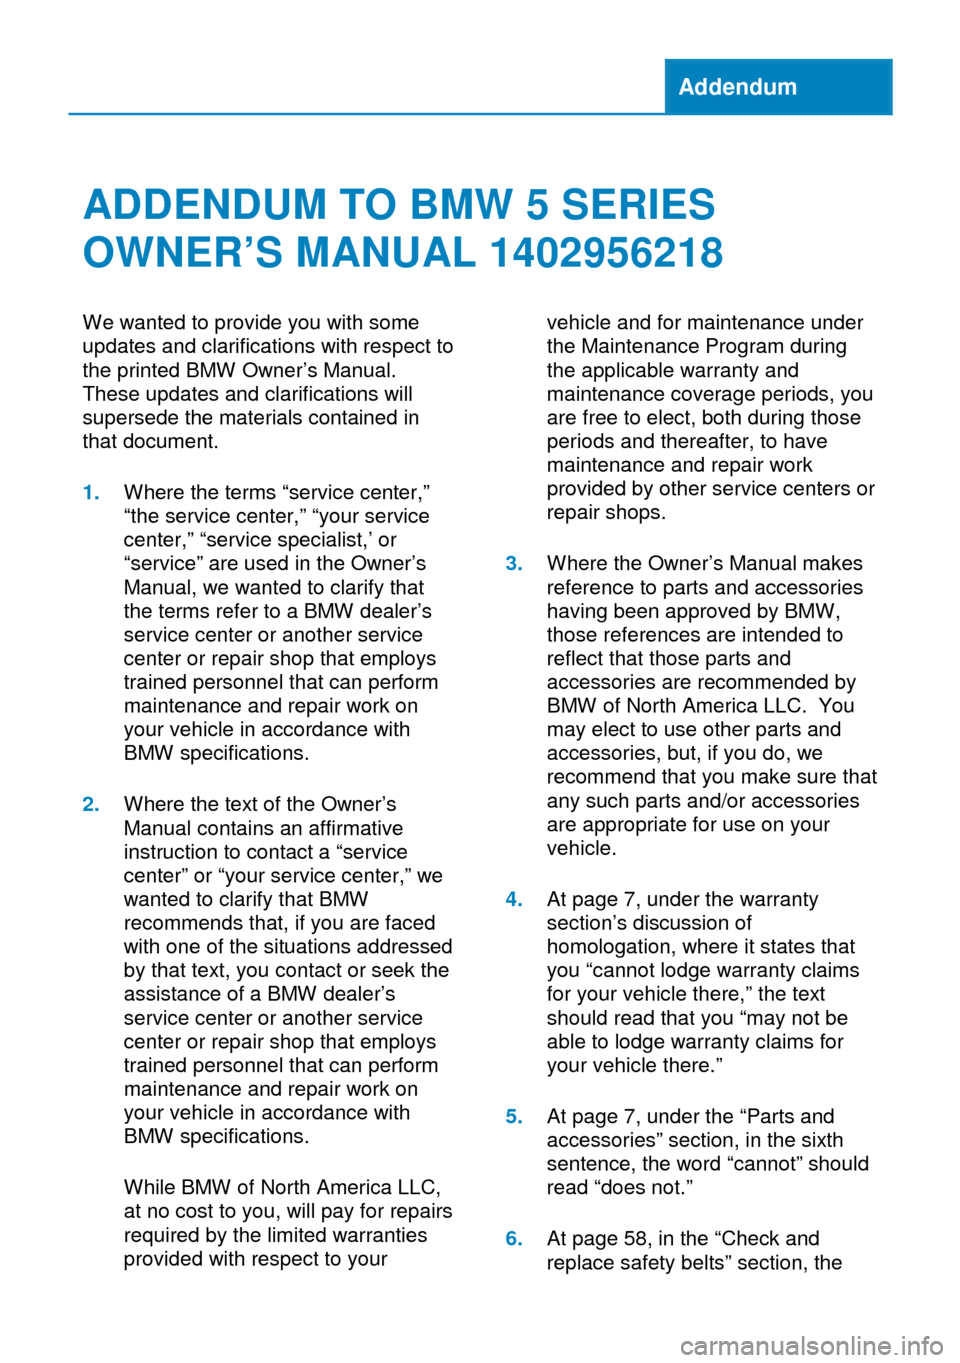 BMW 5 SERIES 2014 F10 Owners Manual Addendum ADDENDUM TO BMW 5 SERIES OWNER'S MANUAL 1402956218 We wanted to provide you with some updates and clarifications with respect to the printed BMW Owner's Manual. These updates and clarific